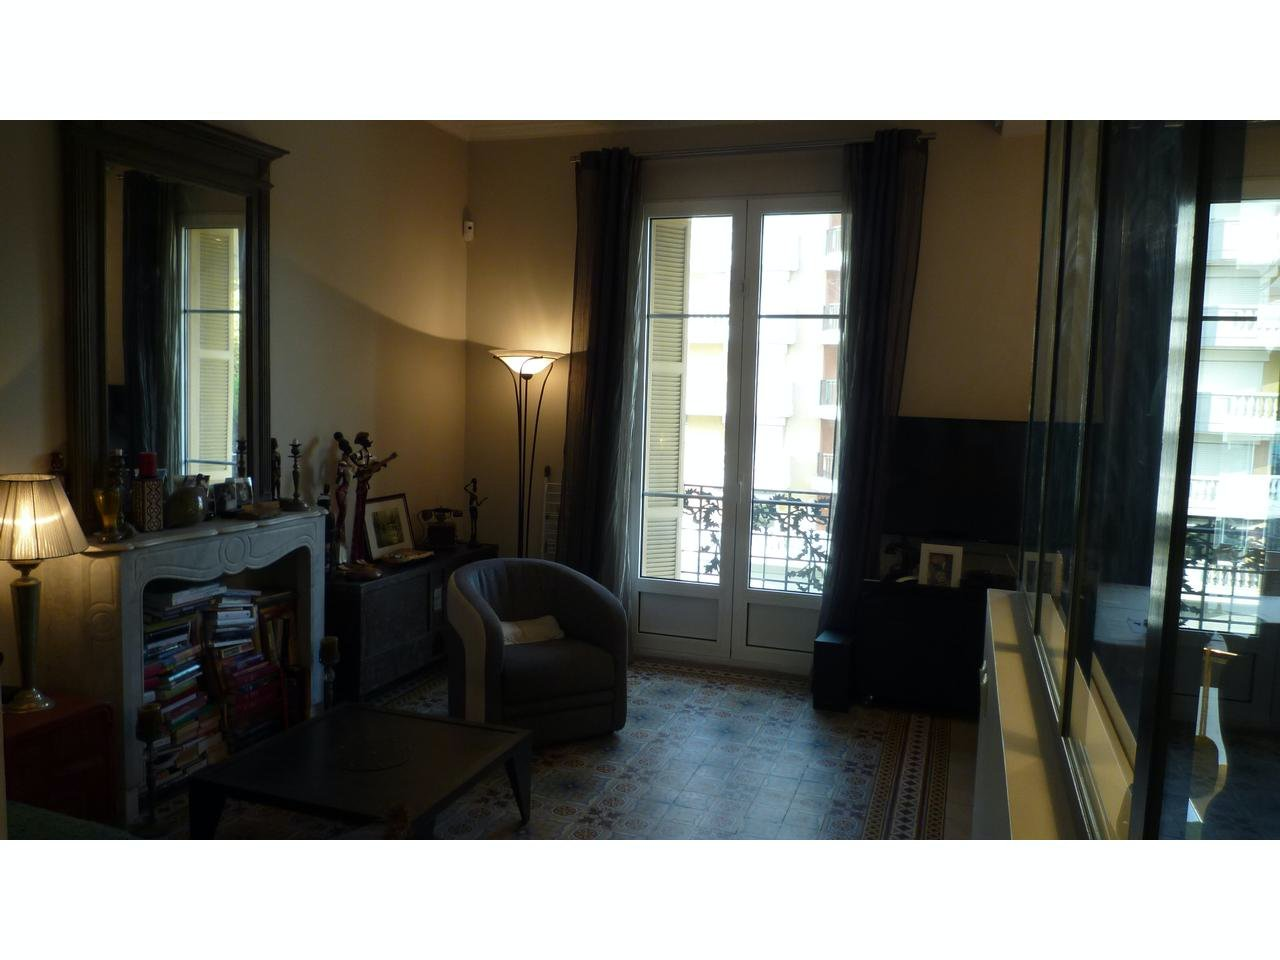 Promenade des Anglais - 50 m from the beach - 2 bedrooms